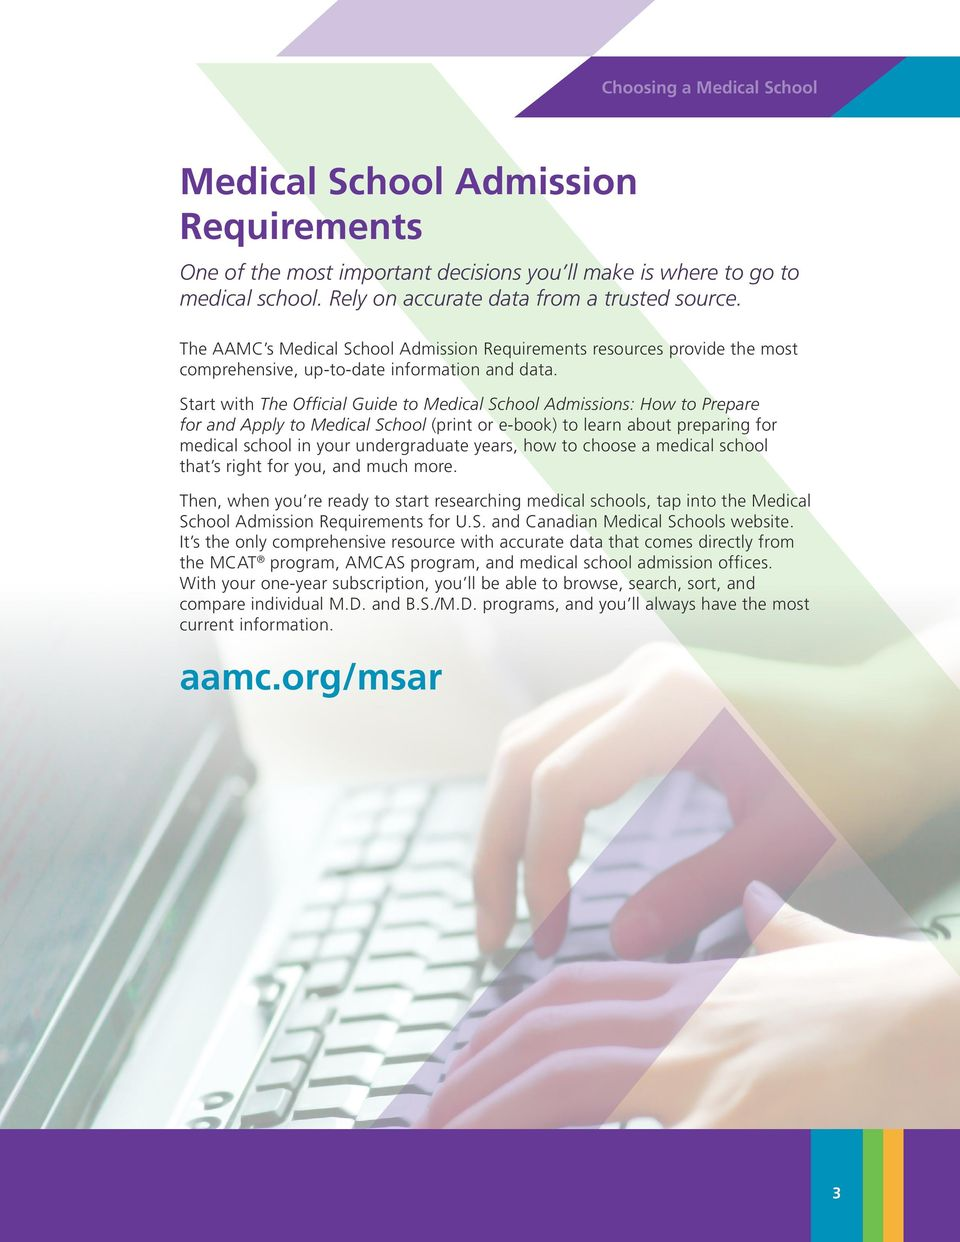 Start with The Official Guide to Medical School Admissions: How to Prepare for and Apply to Medical School (print or e-book) to learn about preparing for medical school in your undergraduate years,